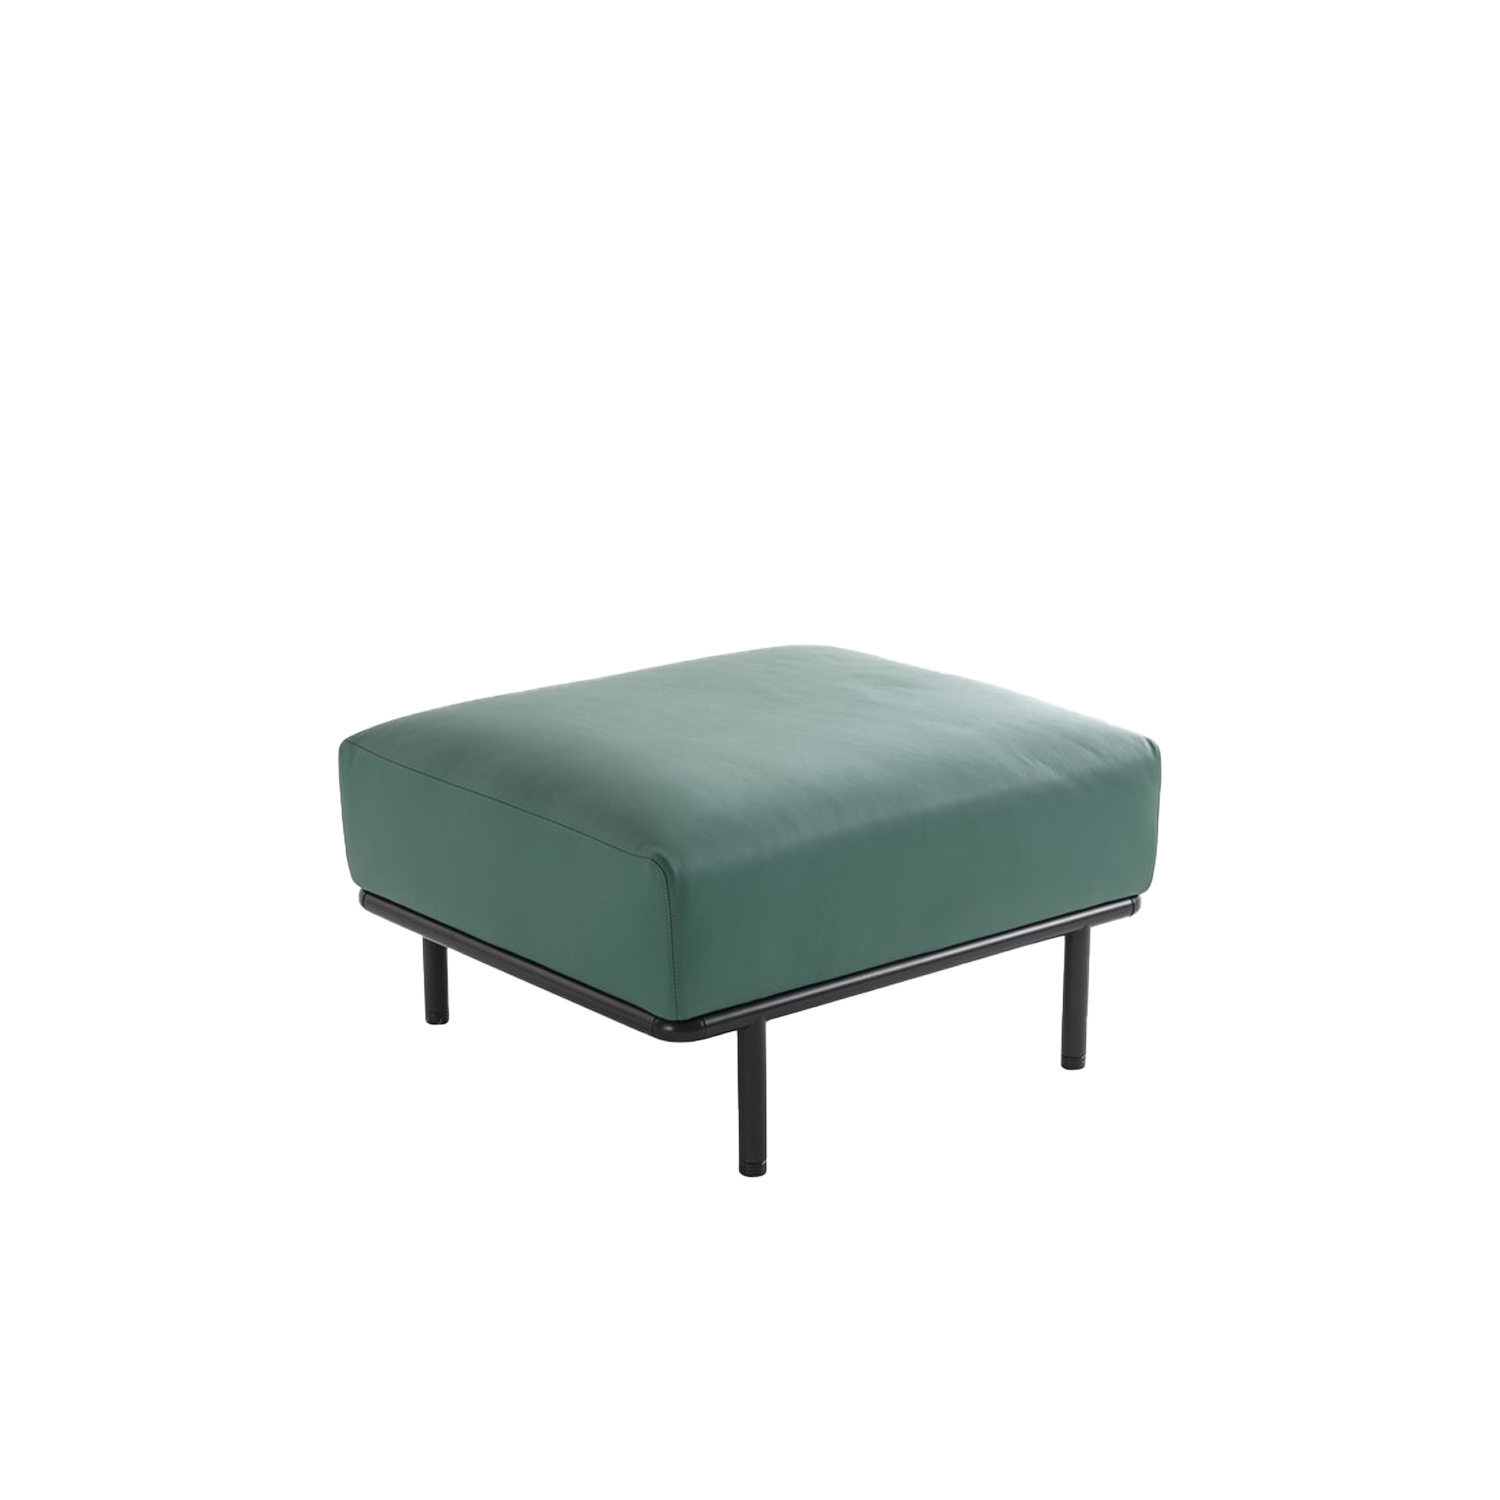 Cap Ferrat Pouf - Cap Ferrat sofa by Carlo Colombo is the emblem of a new collection marked by a rigorous and virtually atemporal design, capable of maintaining an airy appearance, even in large-scale dimensions.  Cap Ferrat sofas, like the homonymous armchairs, are made of multi-density polyurethane and fiber, a solution that guarantees noteworthy comfort. The multiple finishes of the slender metallic base and the ample upholstery selection (which includes fabric, leather and eco leather) allow for a highly customized collection that is equally versatile in appearance and destination. The light and minimal design – though undisputedly solid and resistant – makes Cap Ferrat sofa the ideal choice for domestic as well as high-traffic Contract settings.  | Matter of Stuff